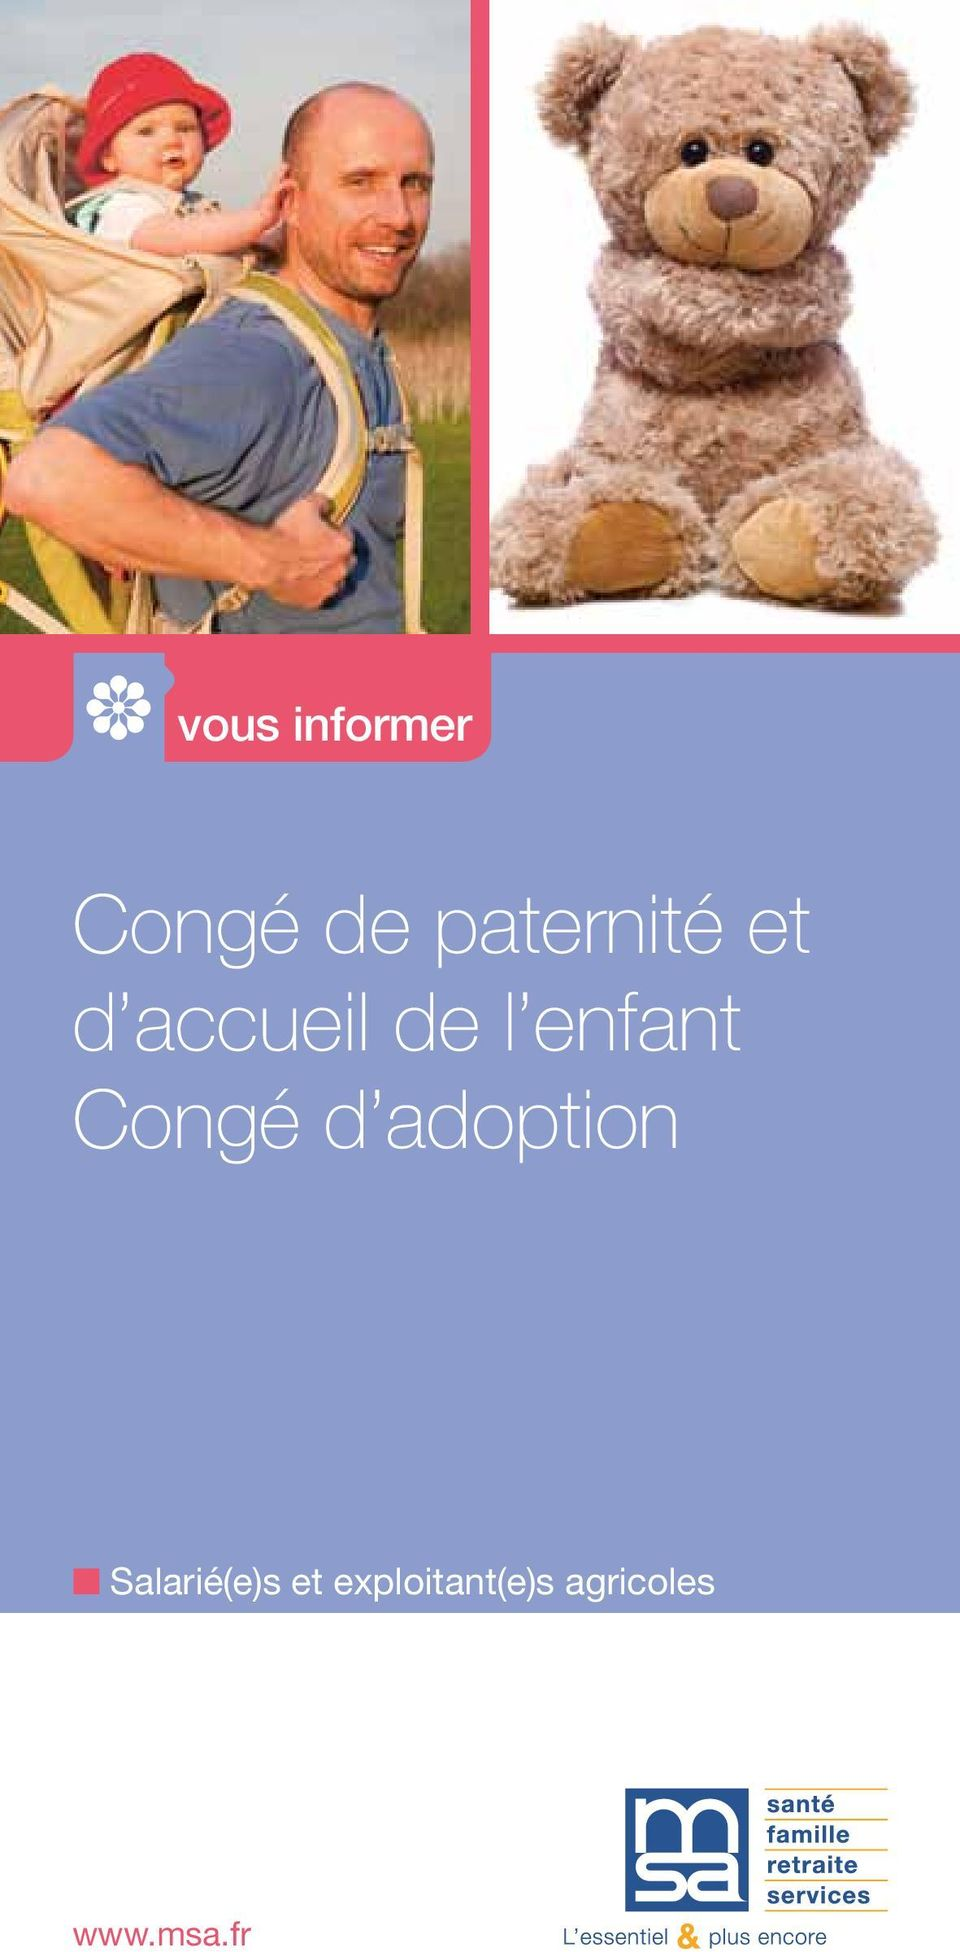 enfant Congé d adoption n